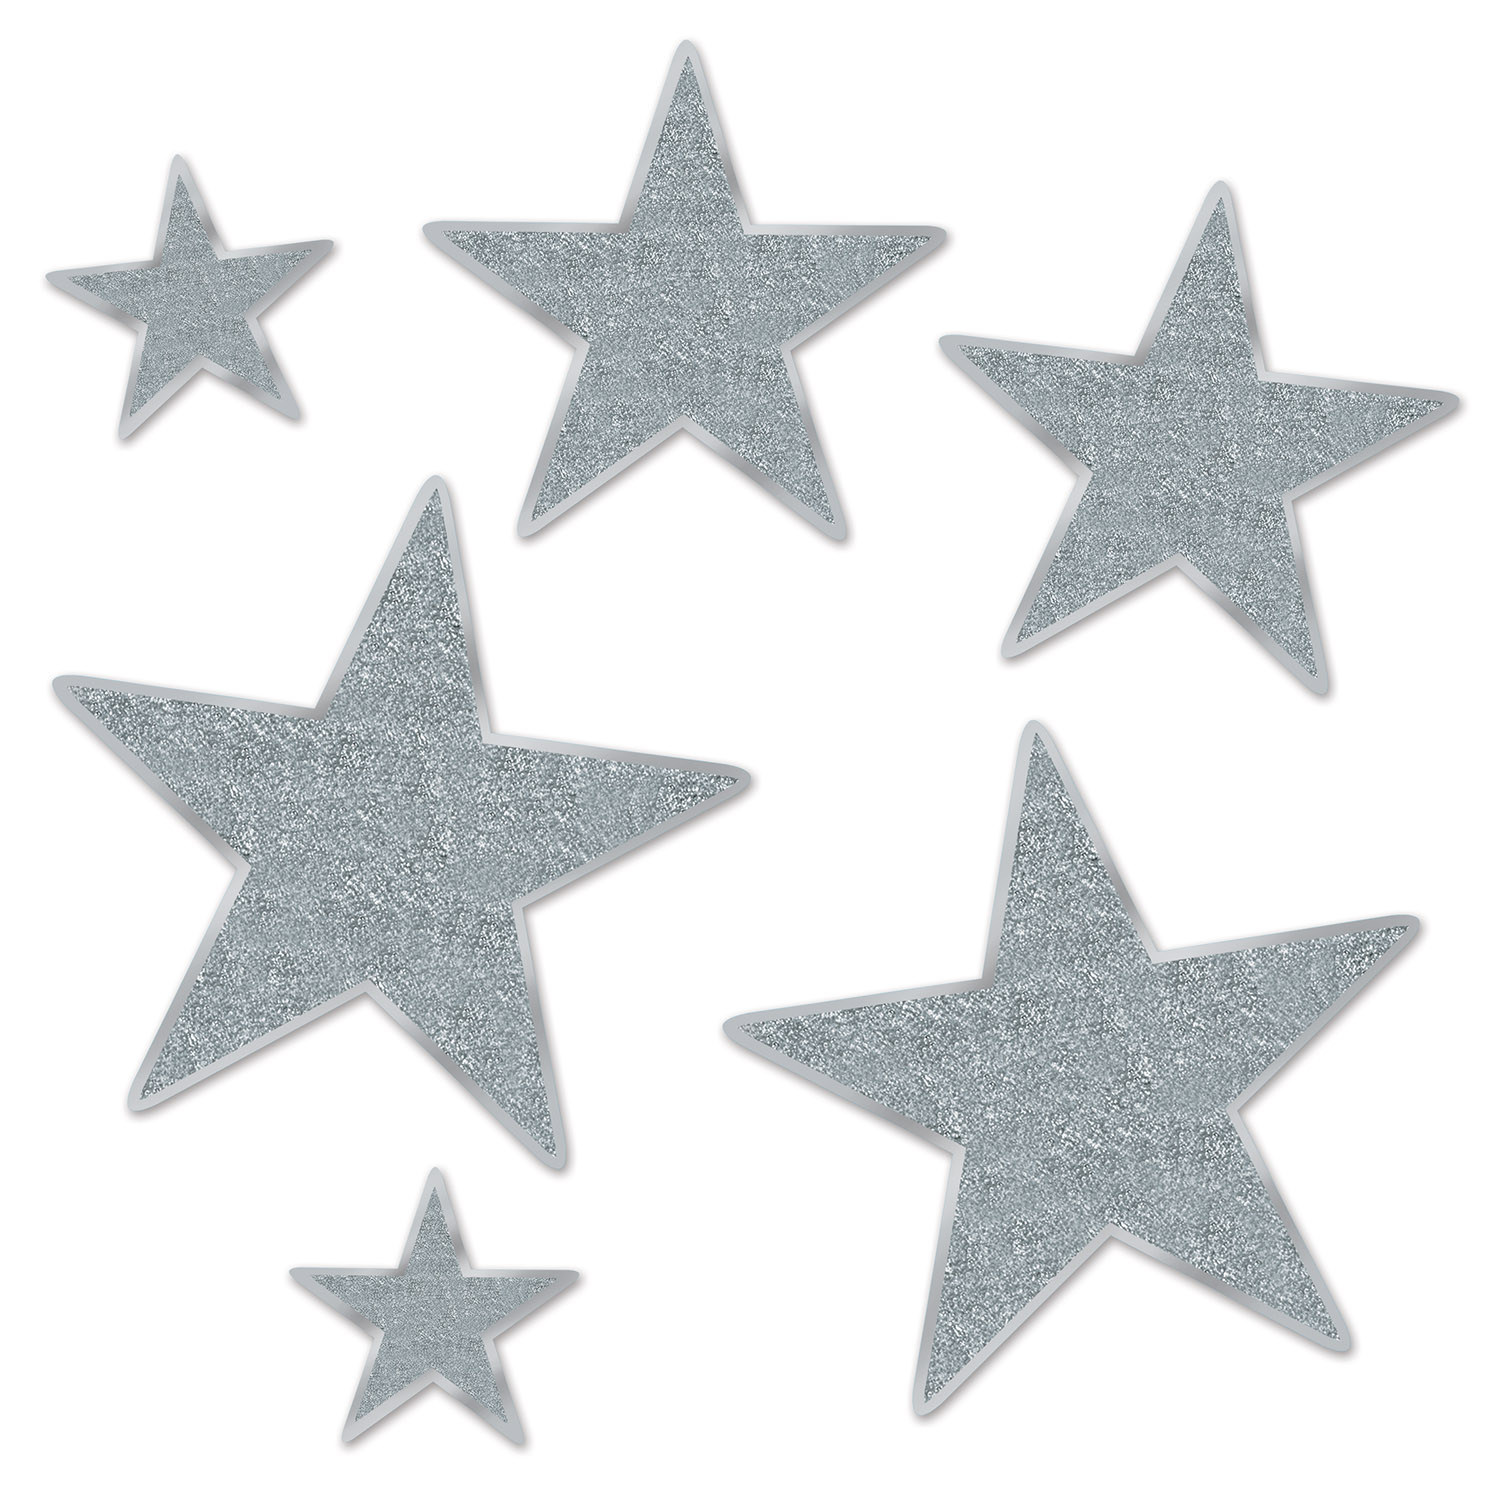 Glittered Foil Star Cutouts (Pack of 72) Glittered Foil Star Cutouts, decoration, new years eve, silver, wholesale, inexpensive, bulk